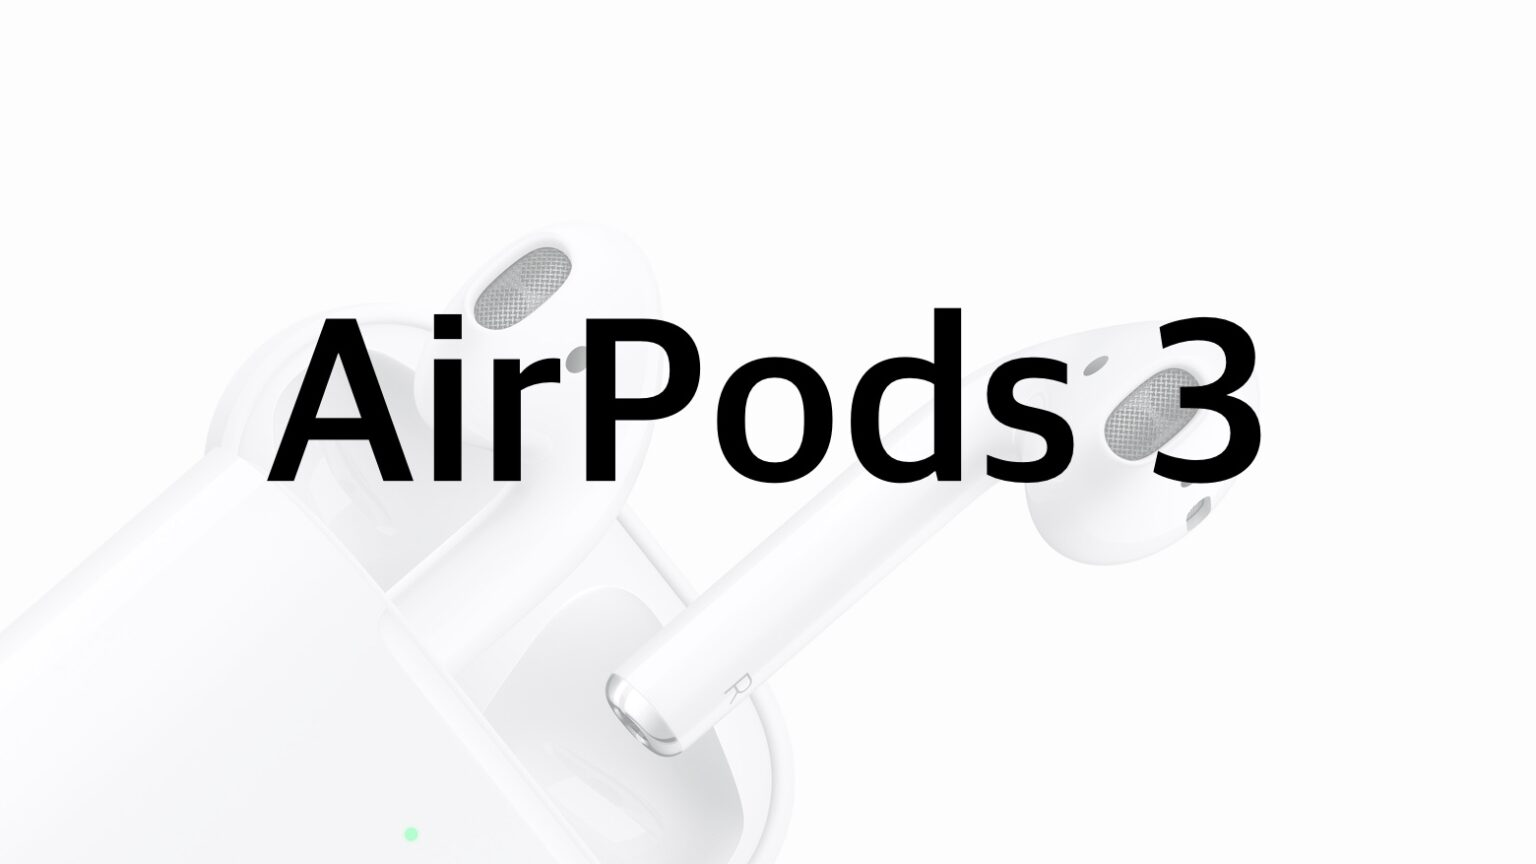 AirPods 3 might borrow some features of AirPods Pro.